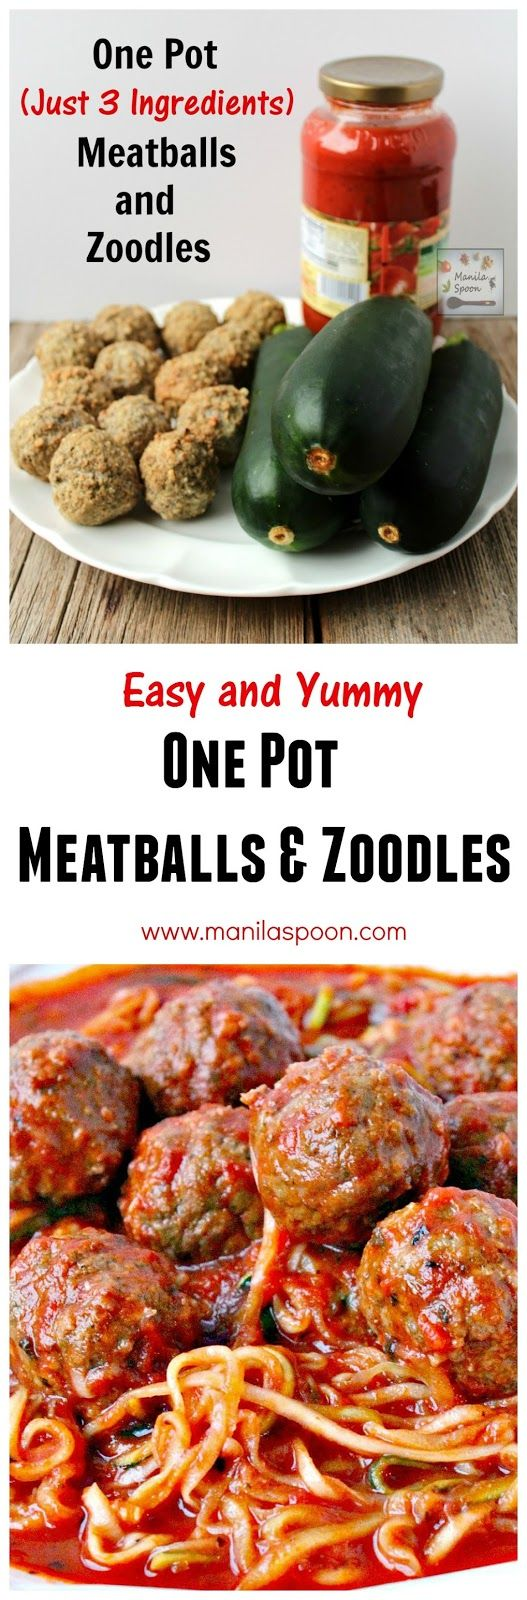 One pot meatballs and zoodles zucchini noodles for Zucchini noodles and meatballs recipe